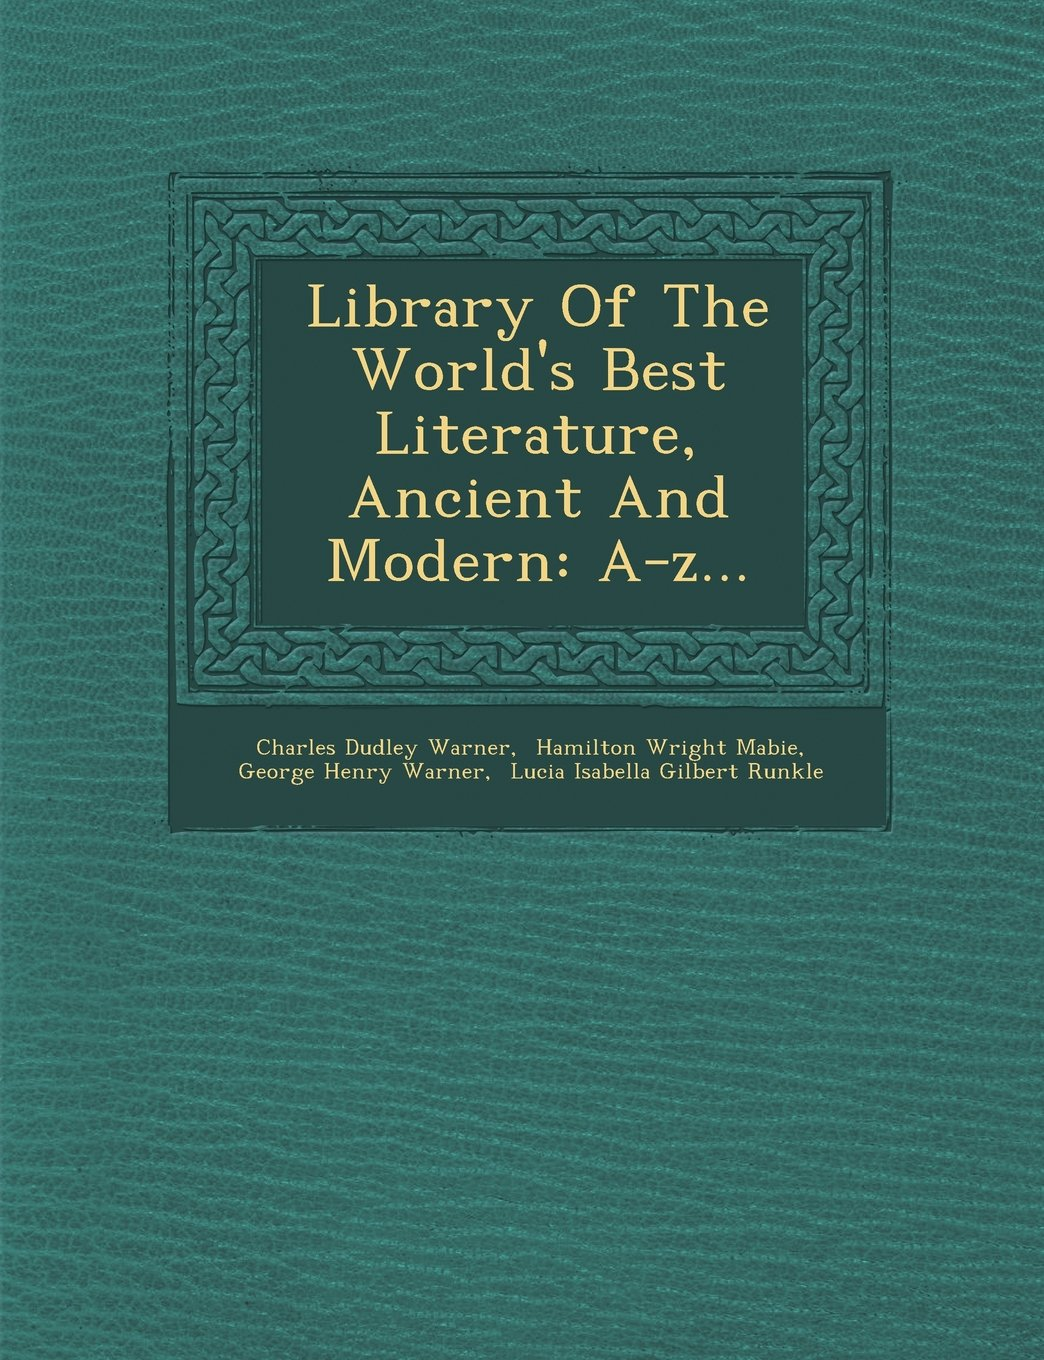 Download Library Of The World's Best Literature, Ancient And Modern: A-z... PDF